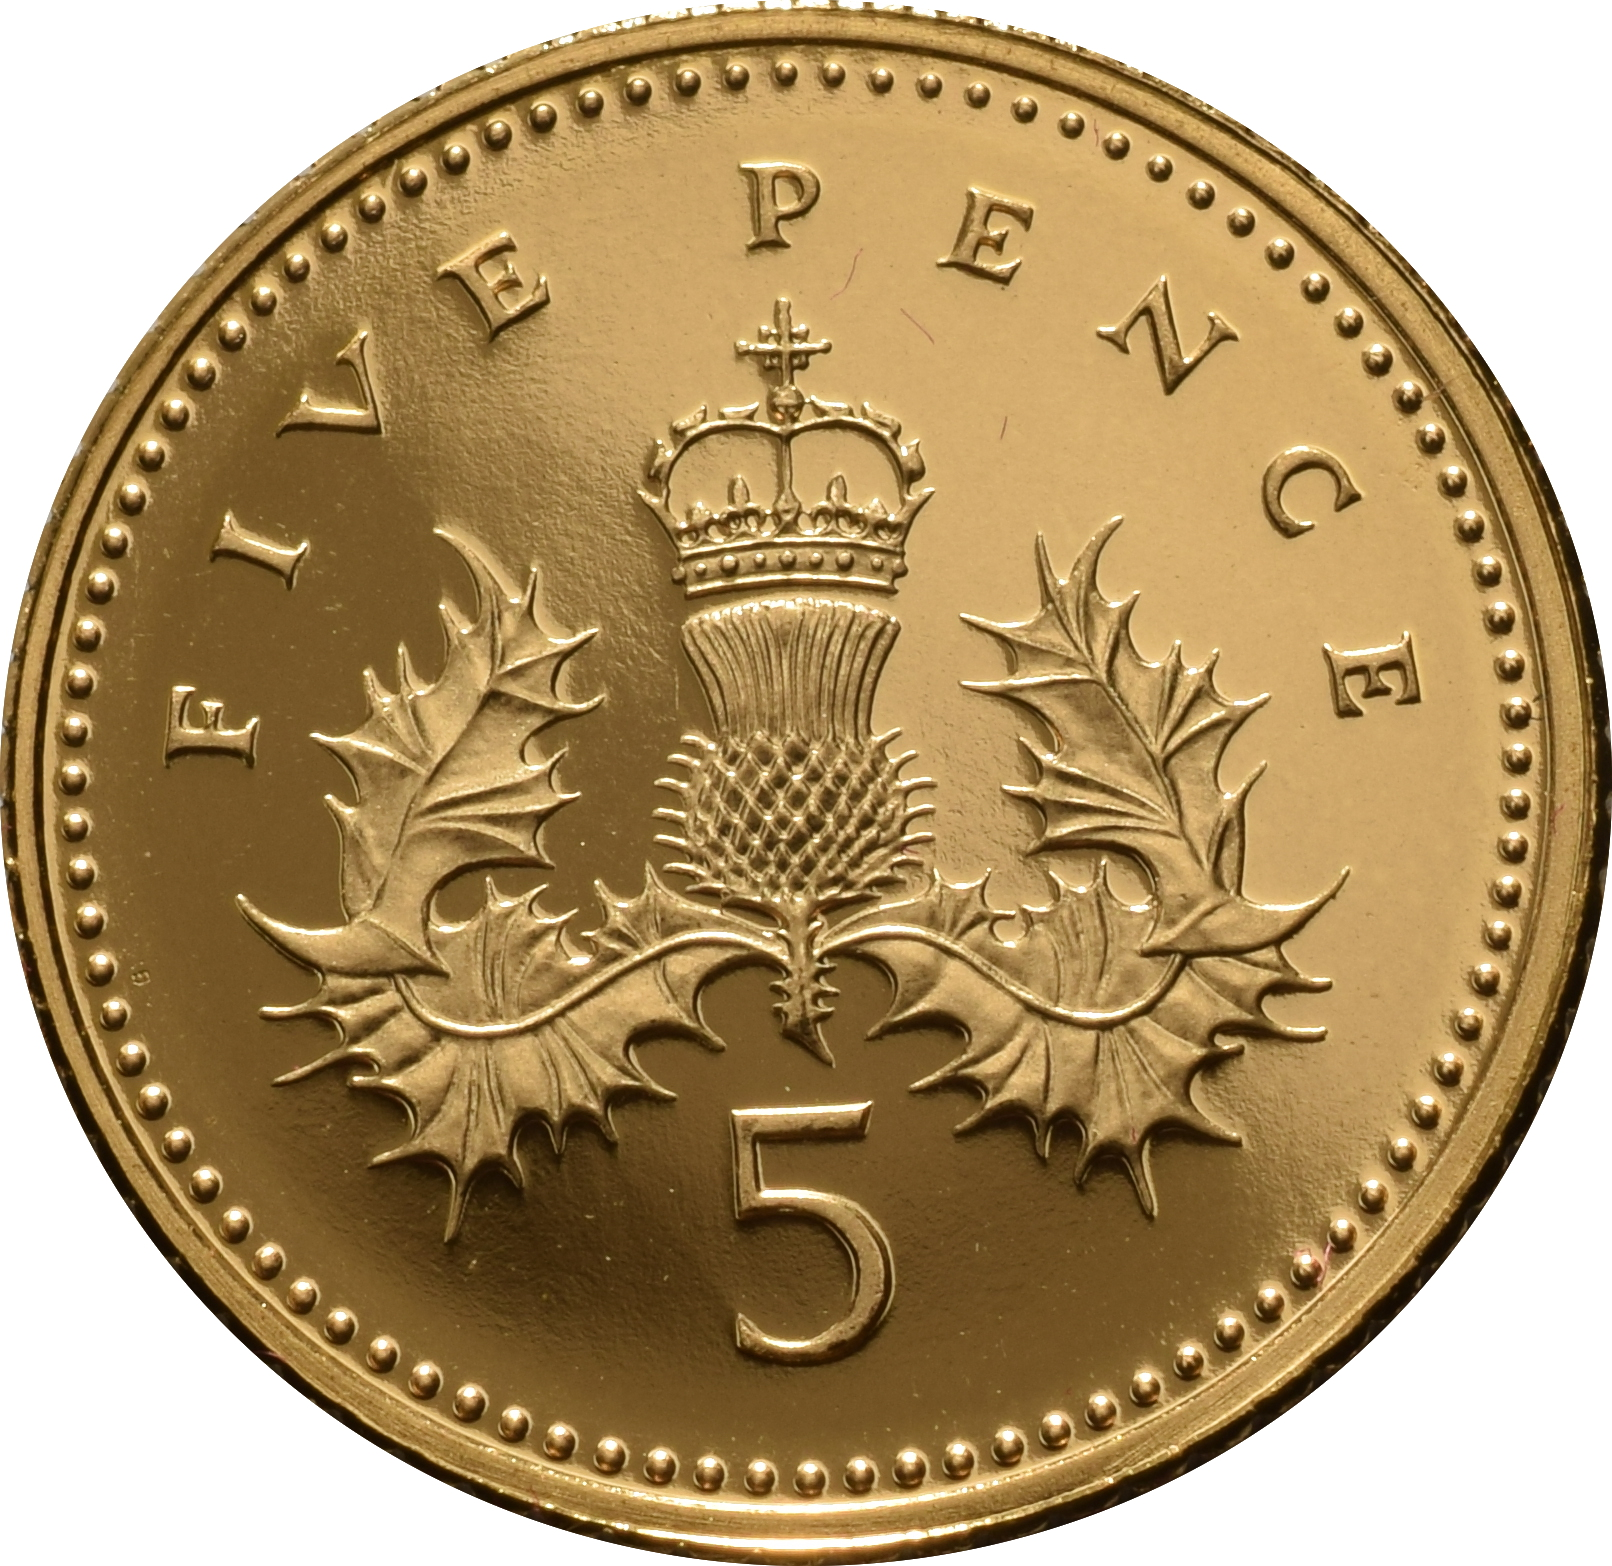 Gold Five Pence Piece Buy 5p Gold Coins At Bullionbypost